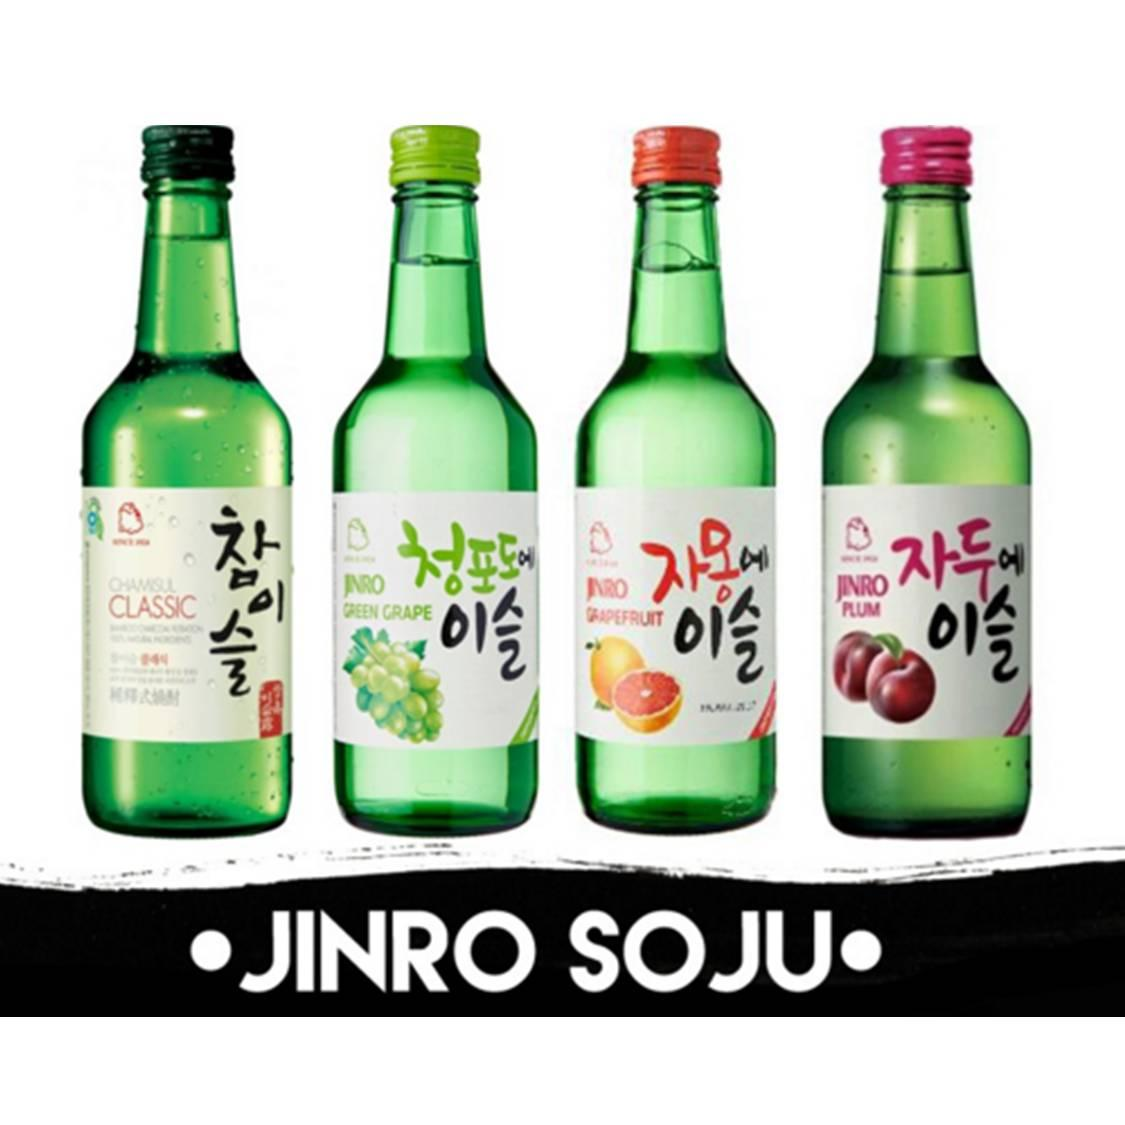 Jinro Soju - Choose Any 4 Bottles Combo - Classic/grape/grapefruit/plum By Qqmart